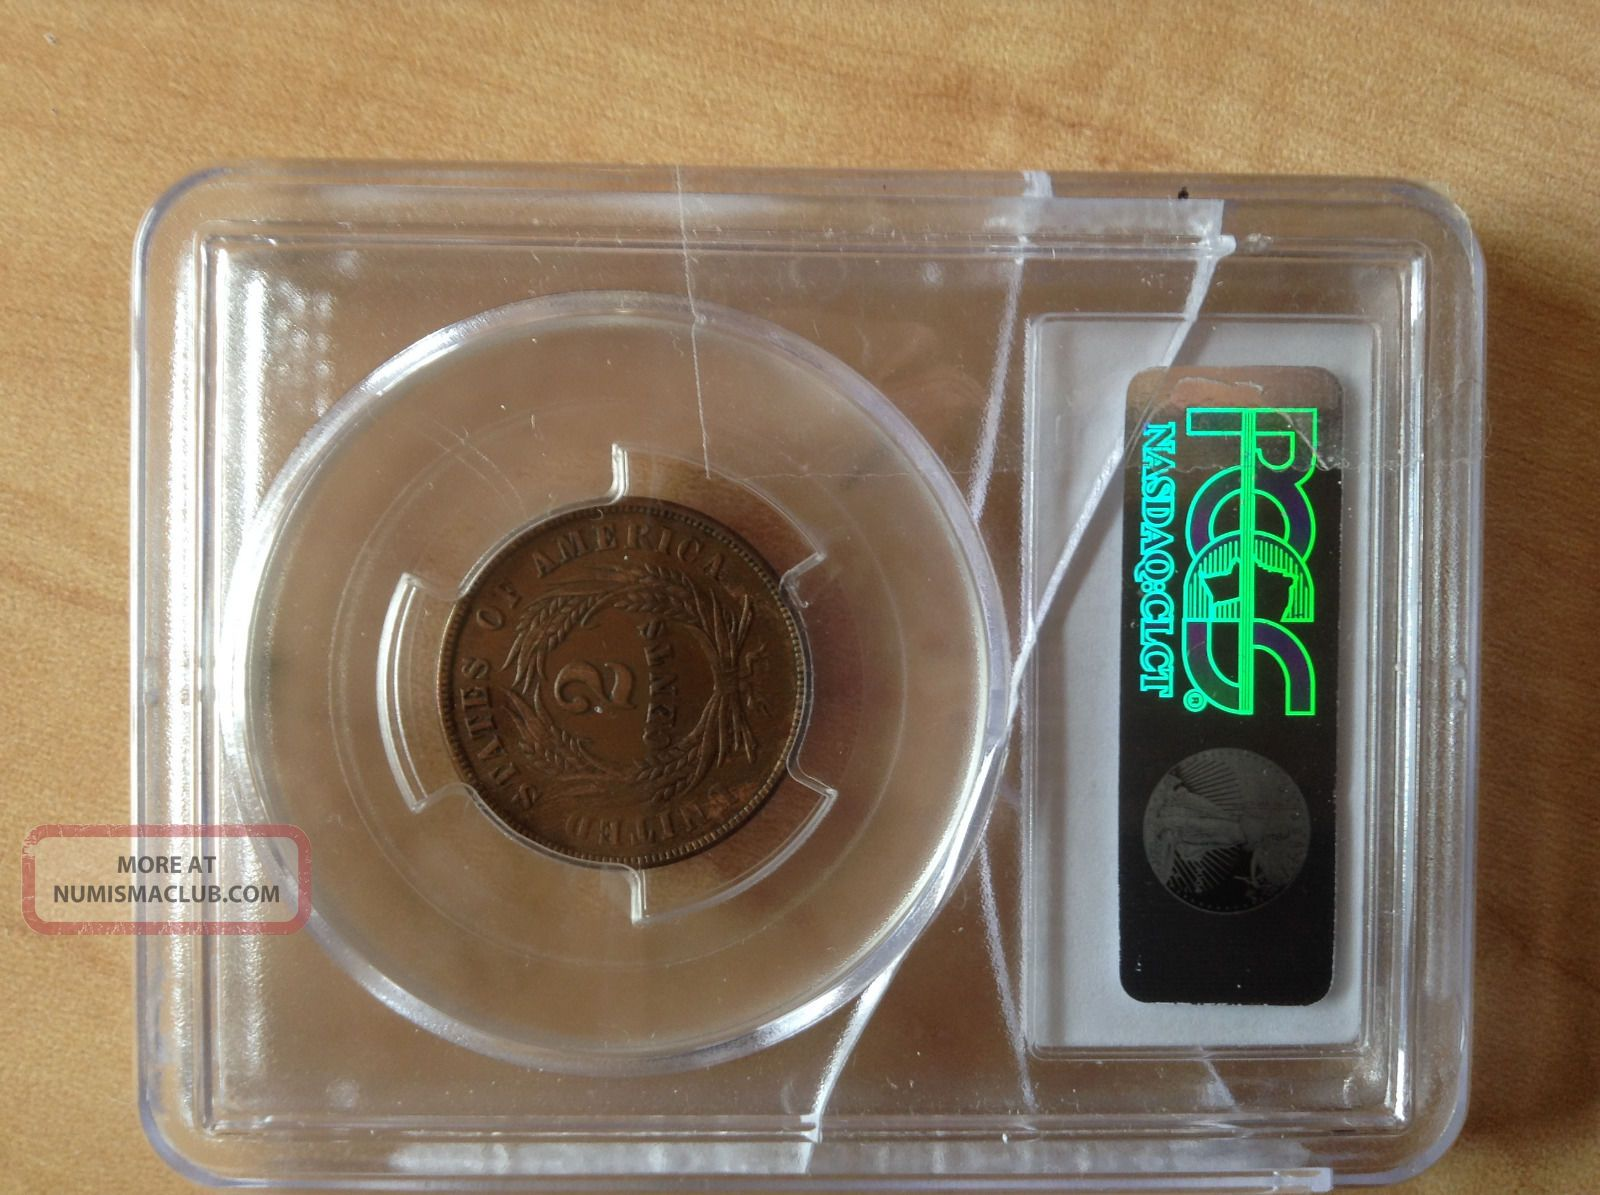 1865 2 Cent Pcgs Xf 45 Coins: US photo